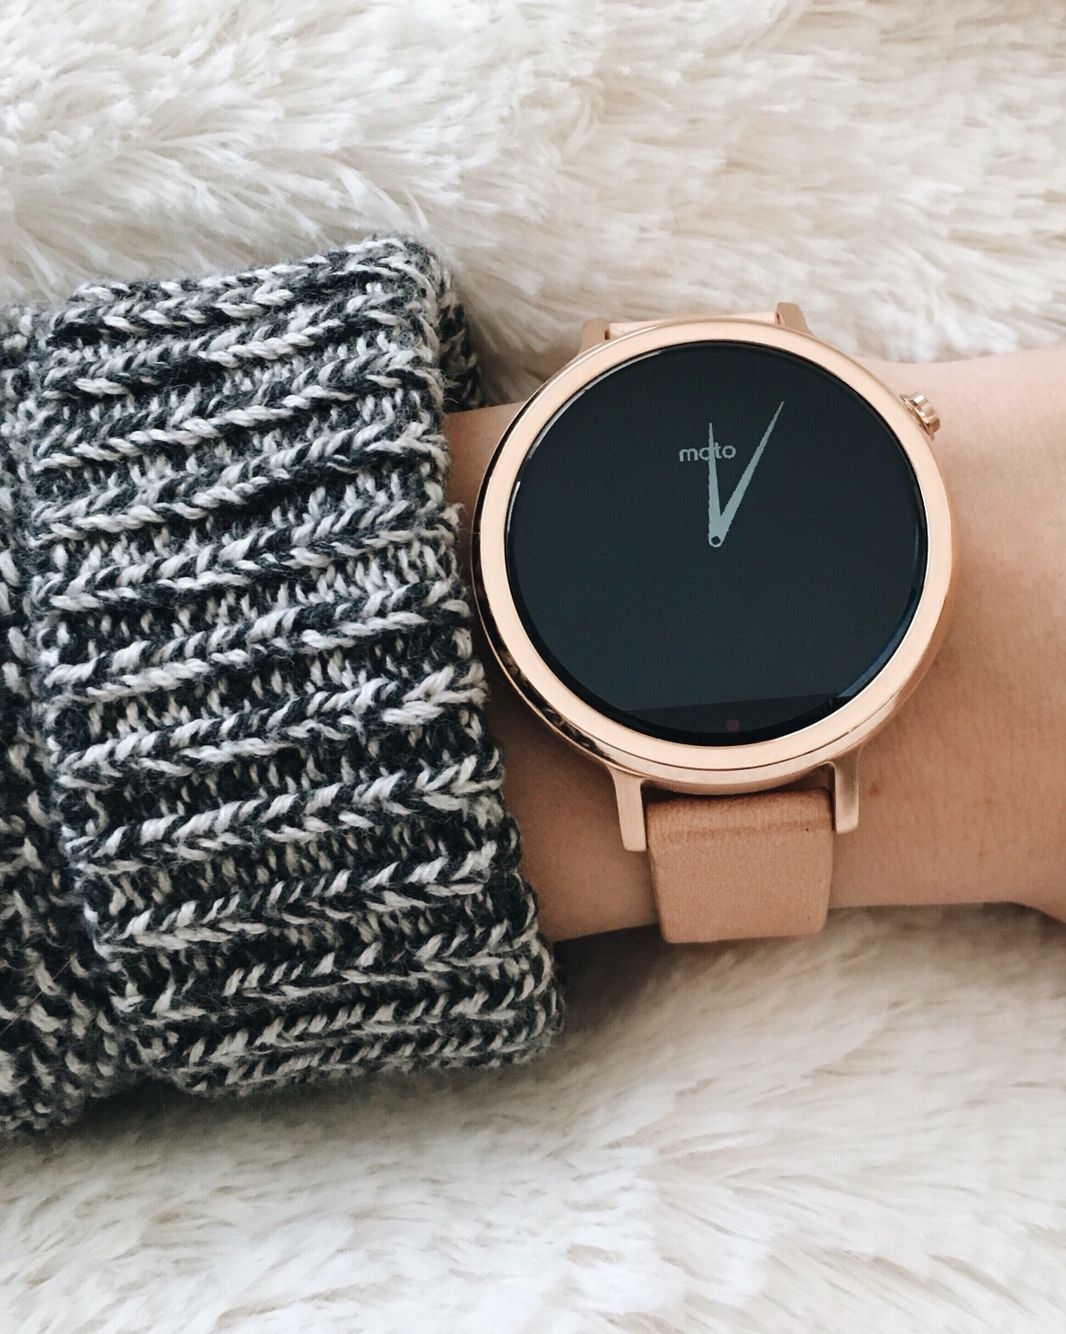 moto 360 smartwatch in rose gold for women love this watch minimal and goes with pastels and. Black Bedroom Furniture Sets. Home Design Ideas